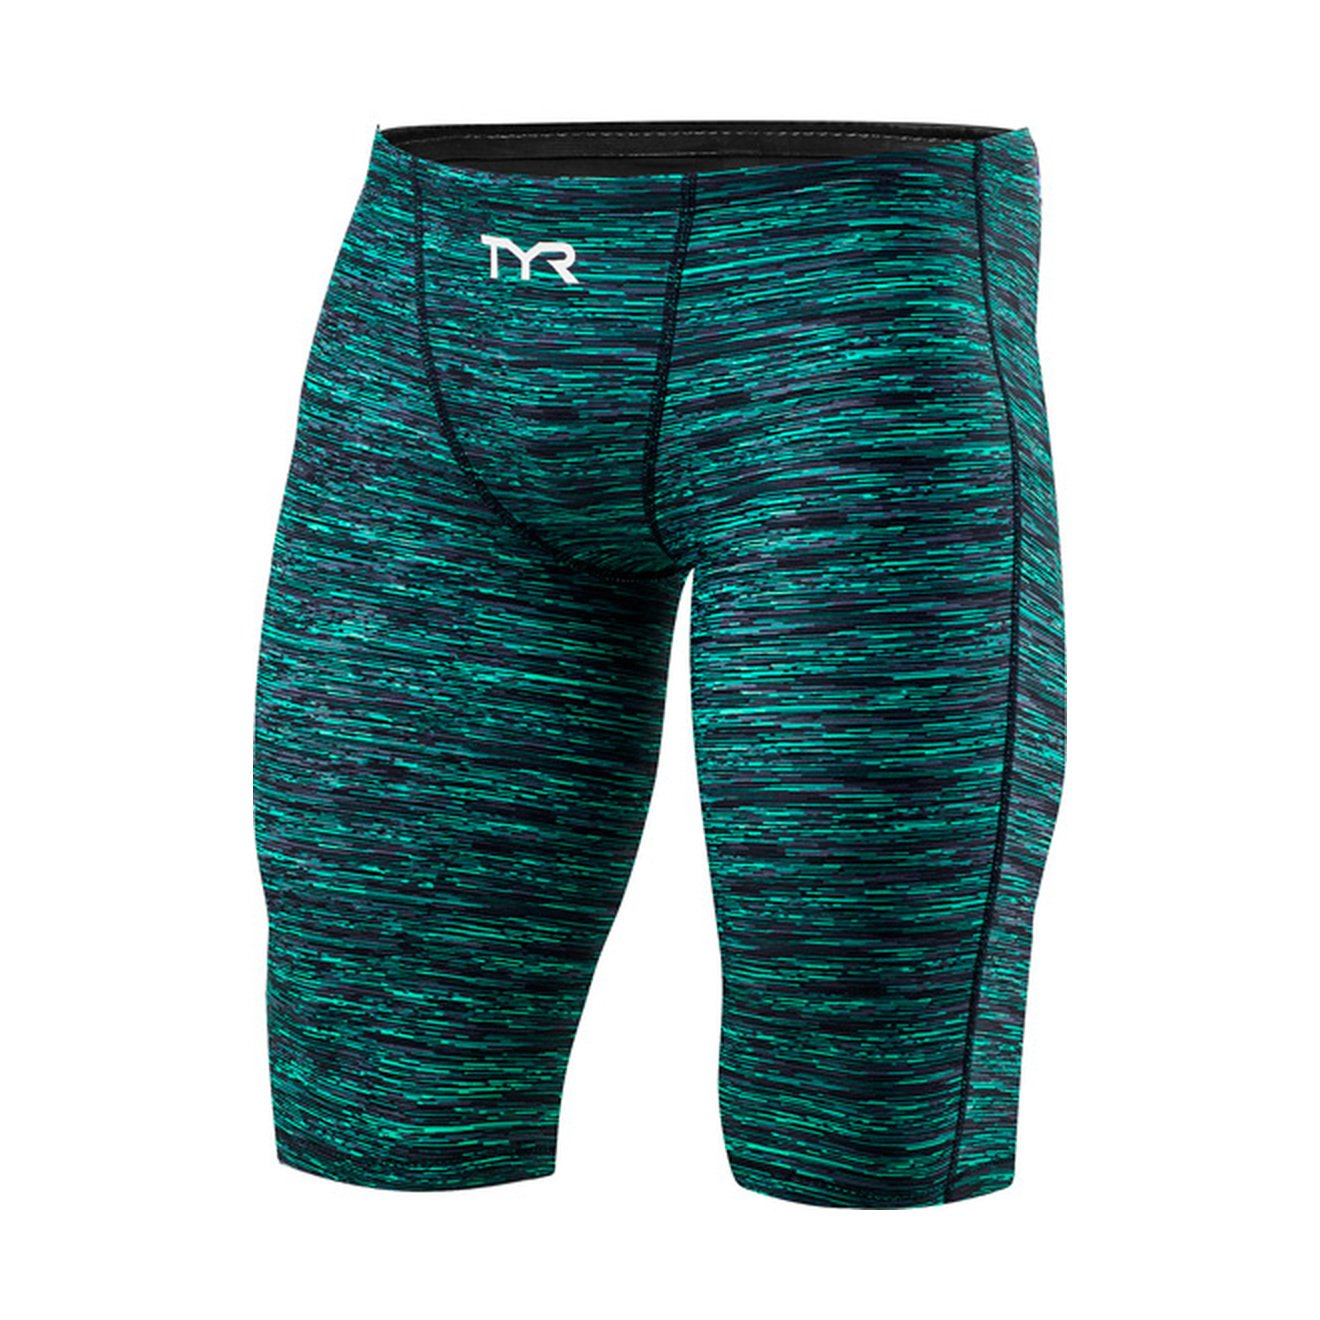 TYR Mens Thresher Baja Jammer